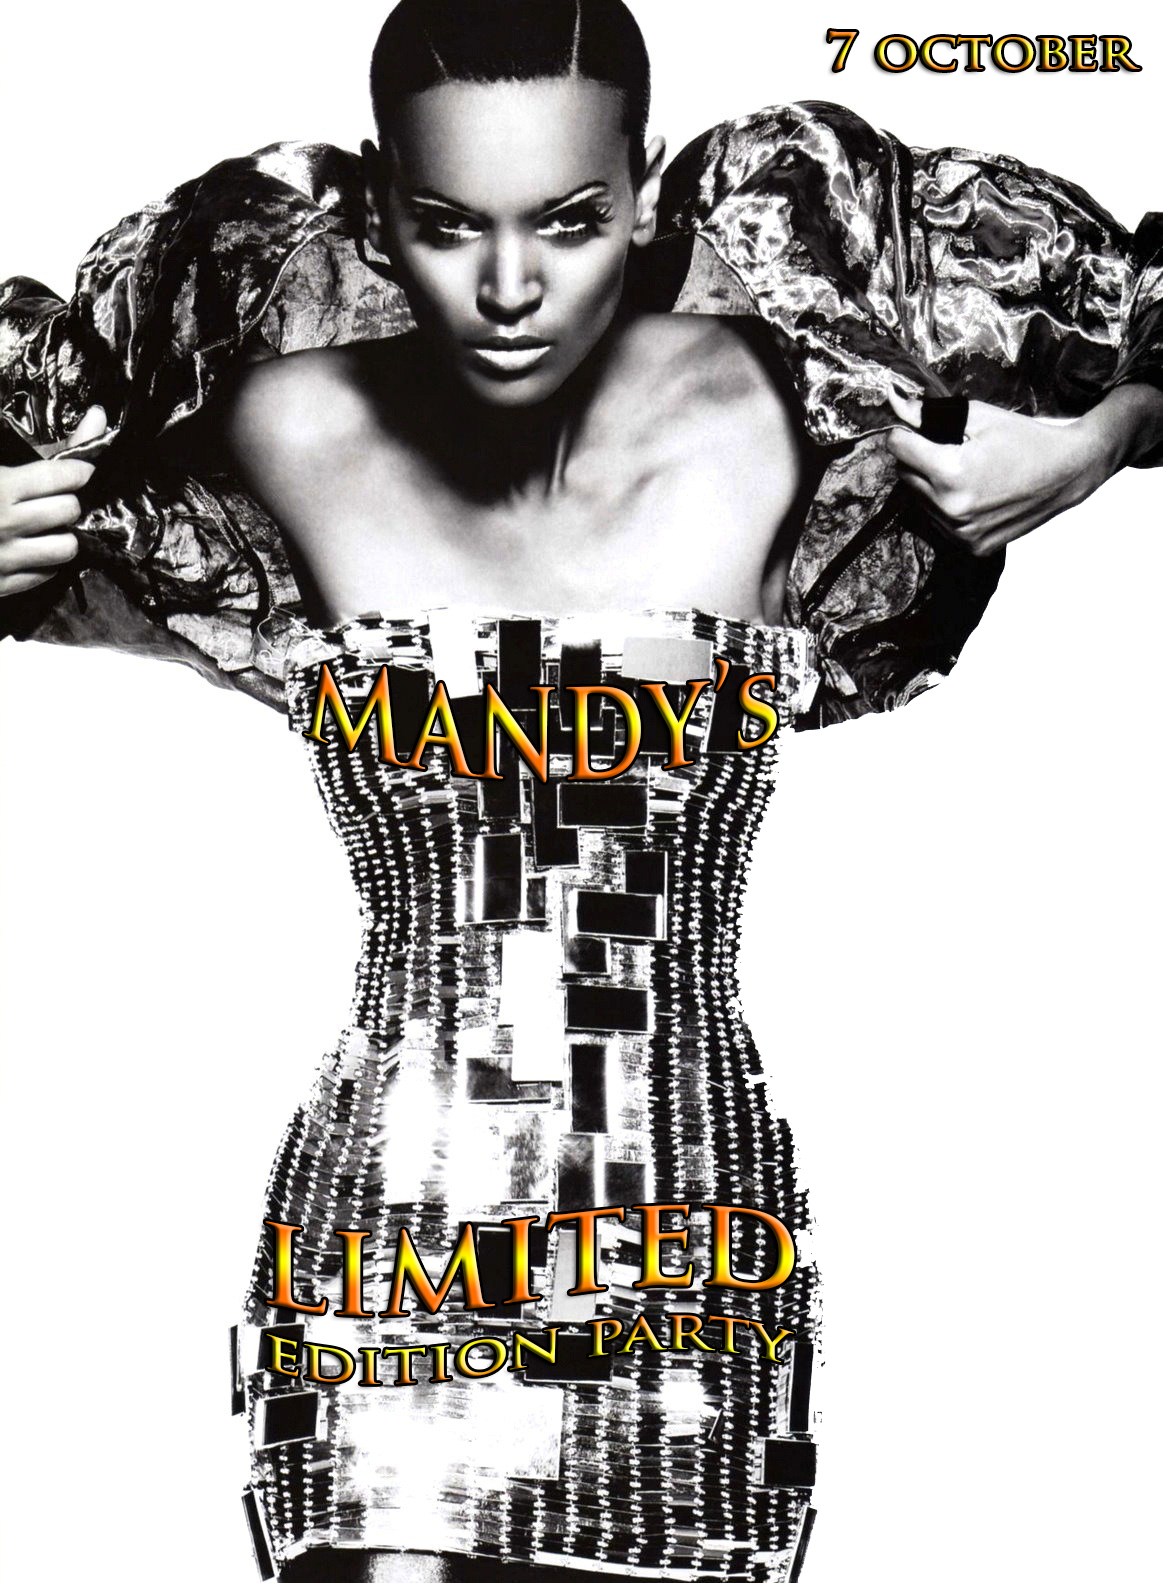 """MANDY'S"" Limited Edition Party"